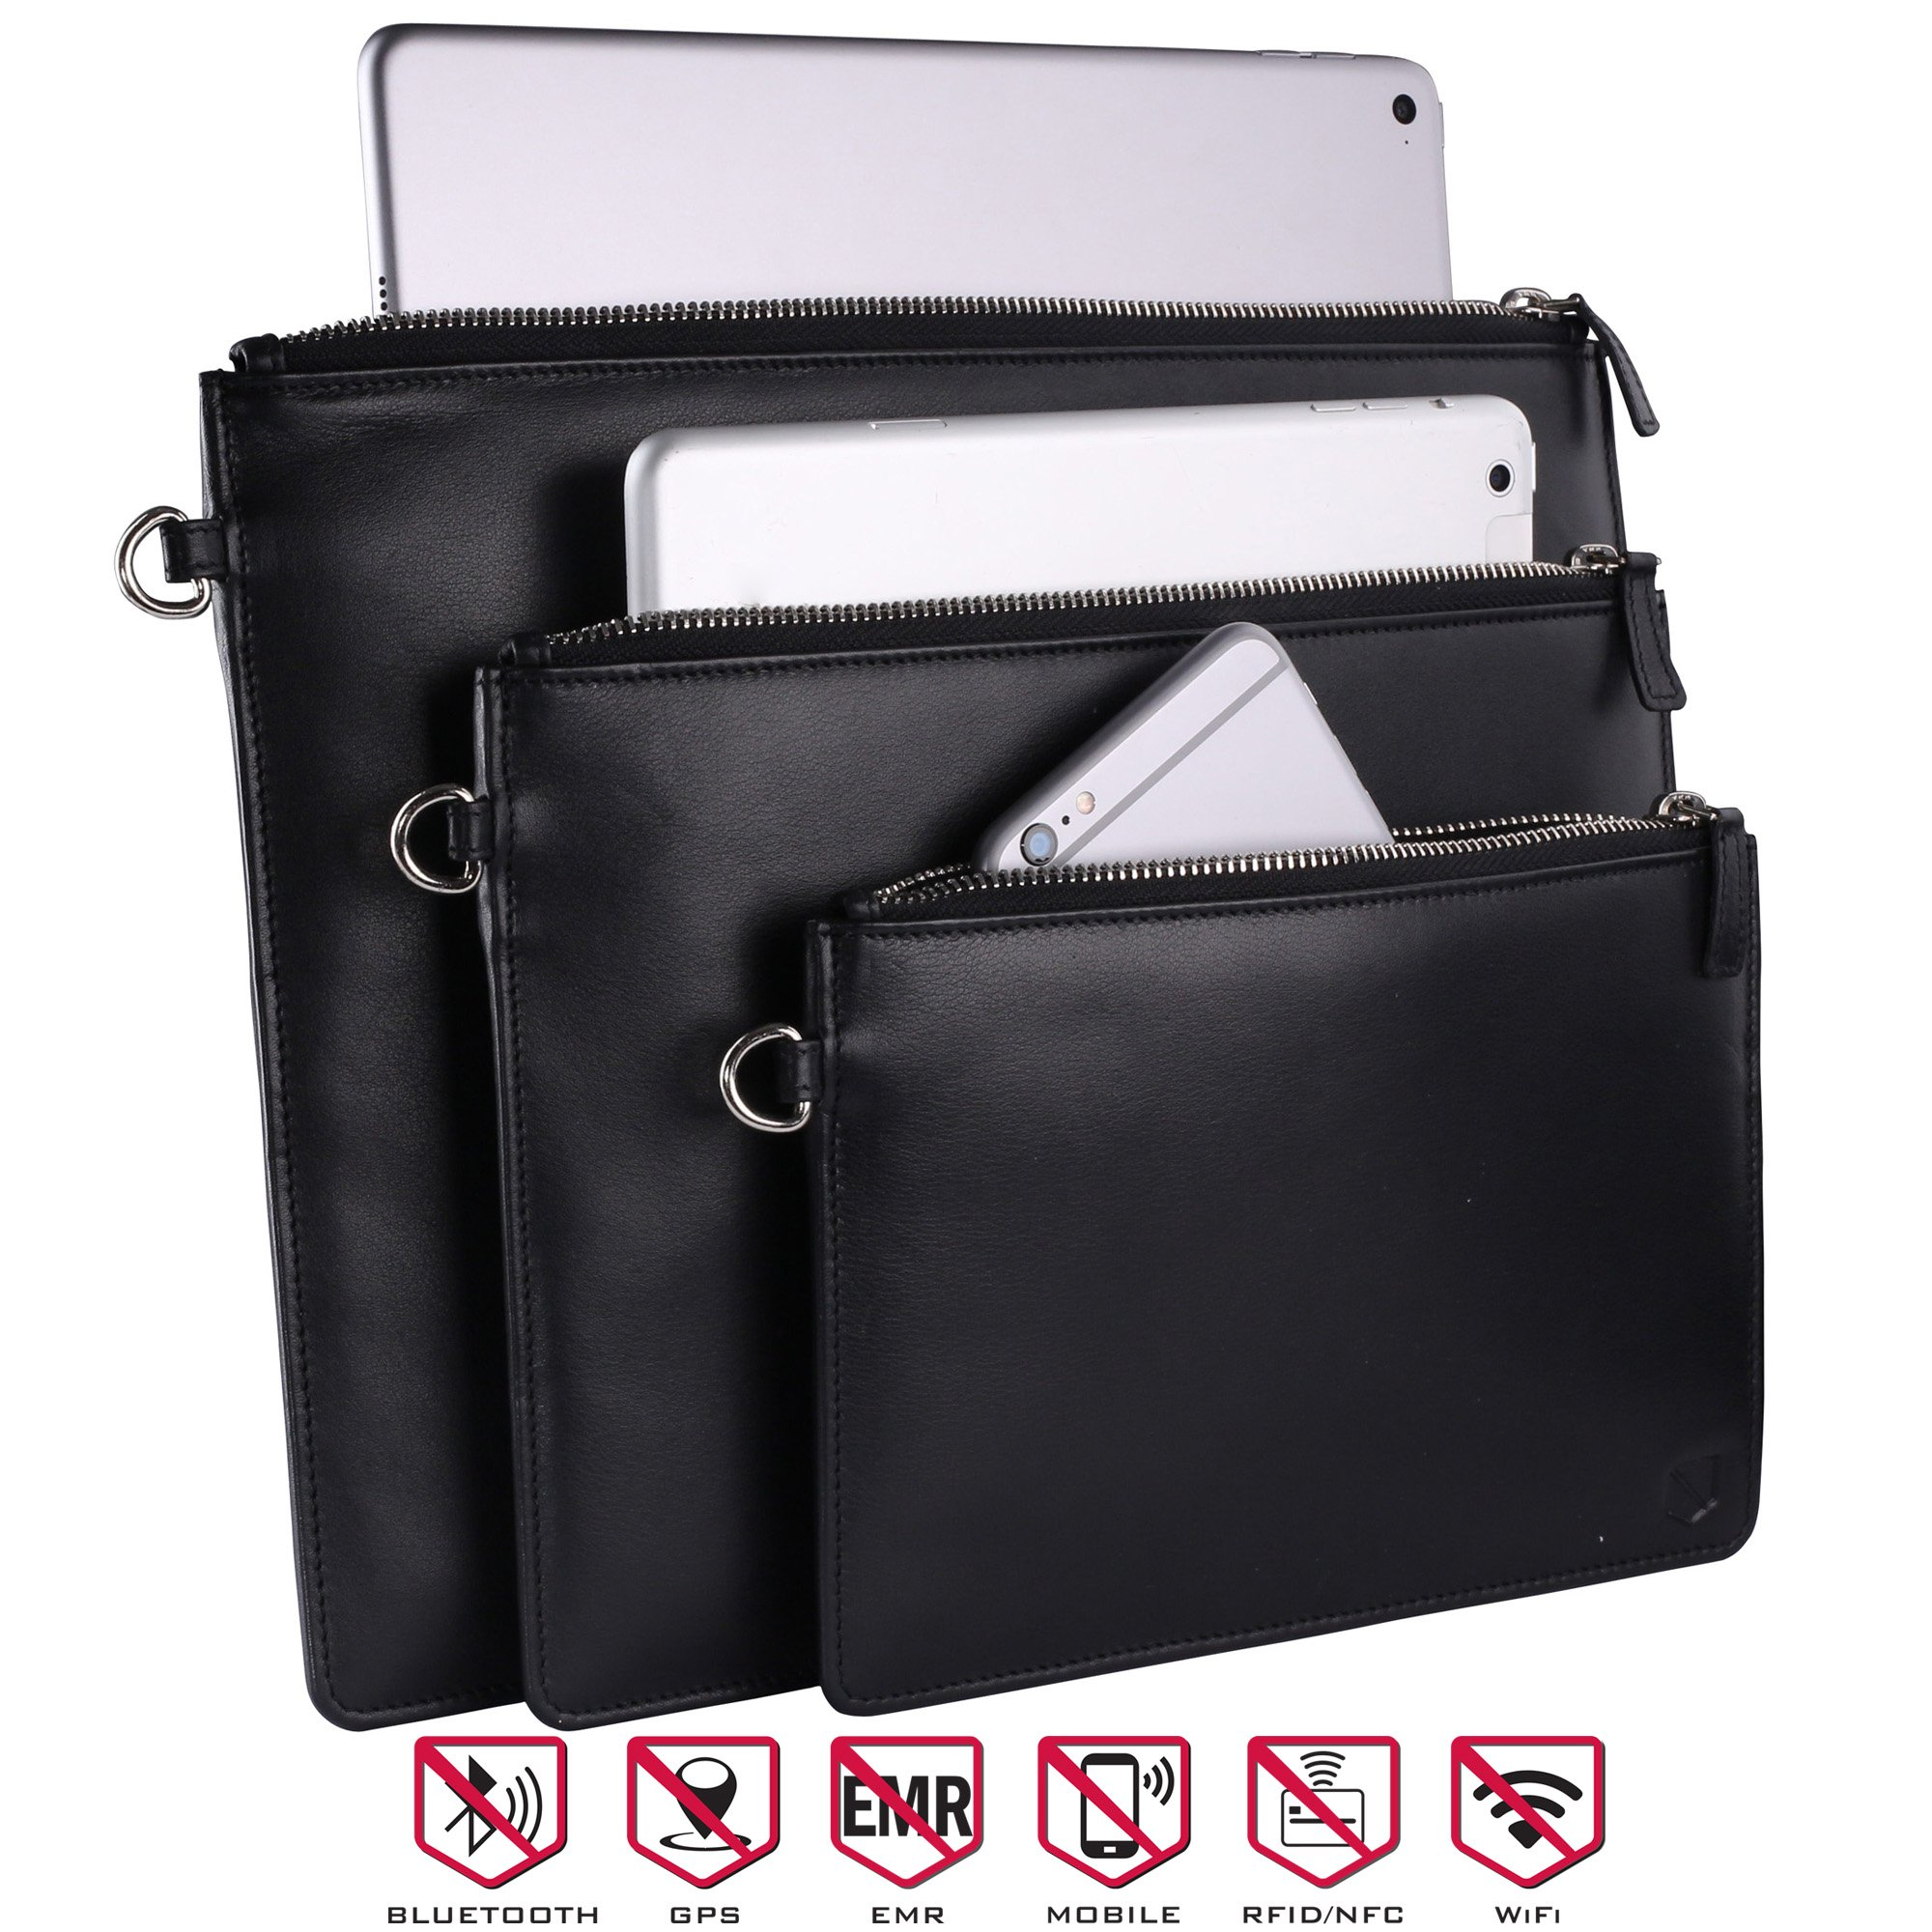 Silent Pocket XL Faraday Bag Cage Cell Phone Sleeve Pouch Carryall - Blocks all Wireless Signals